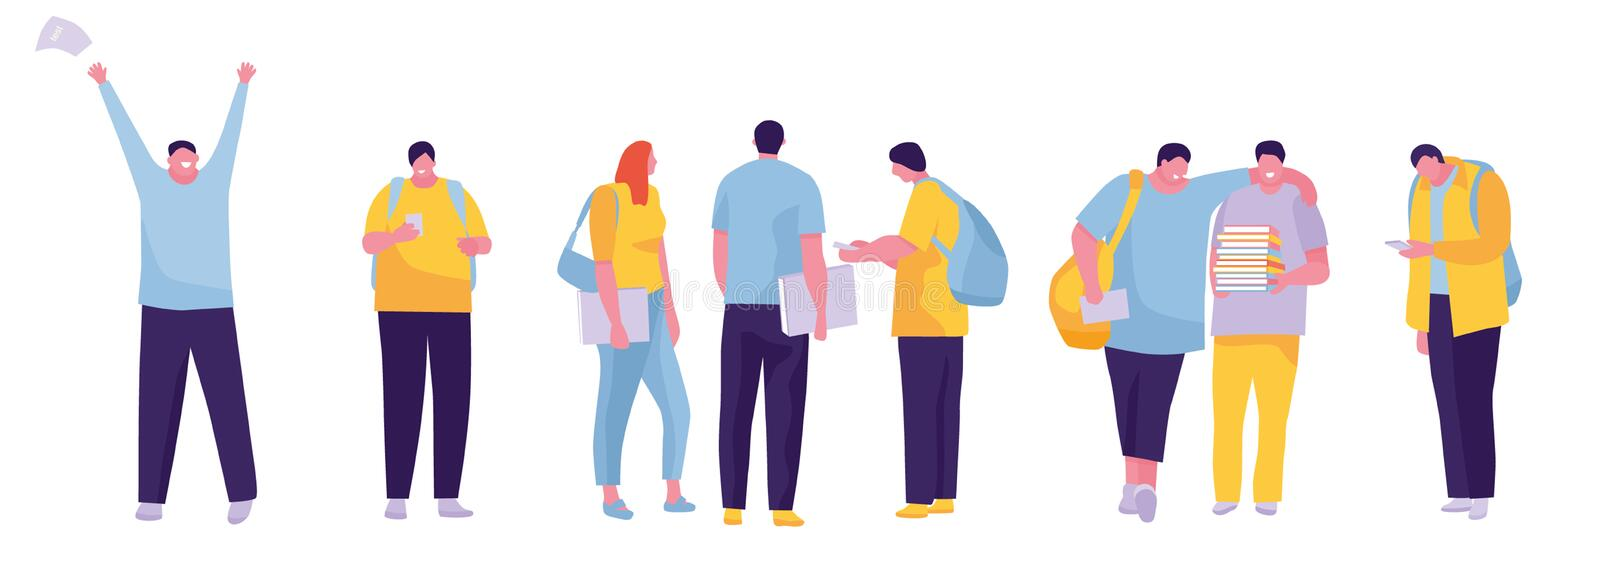 Group of students smiling and standing together. White background. Vector illustration in a flat cartoon style. Group of students smiling and standing together royalty free illustration